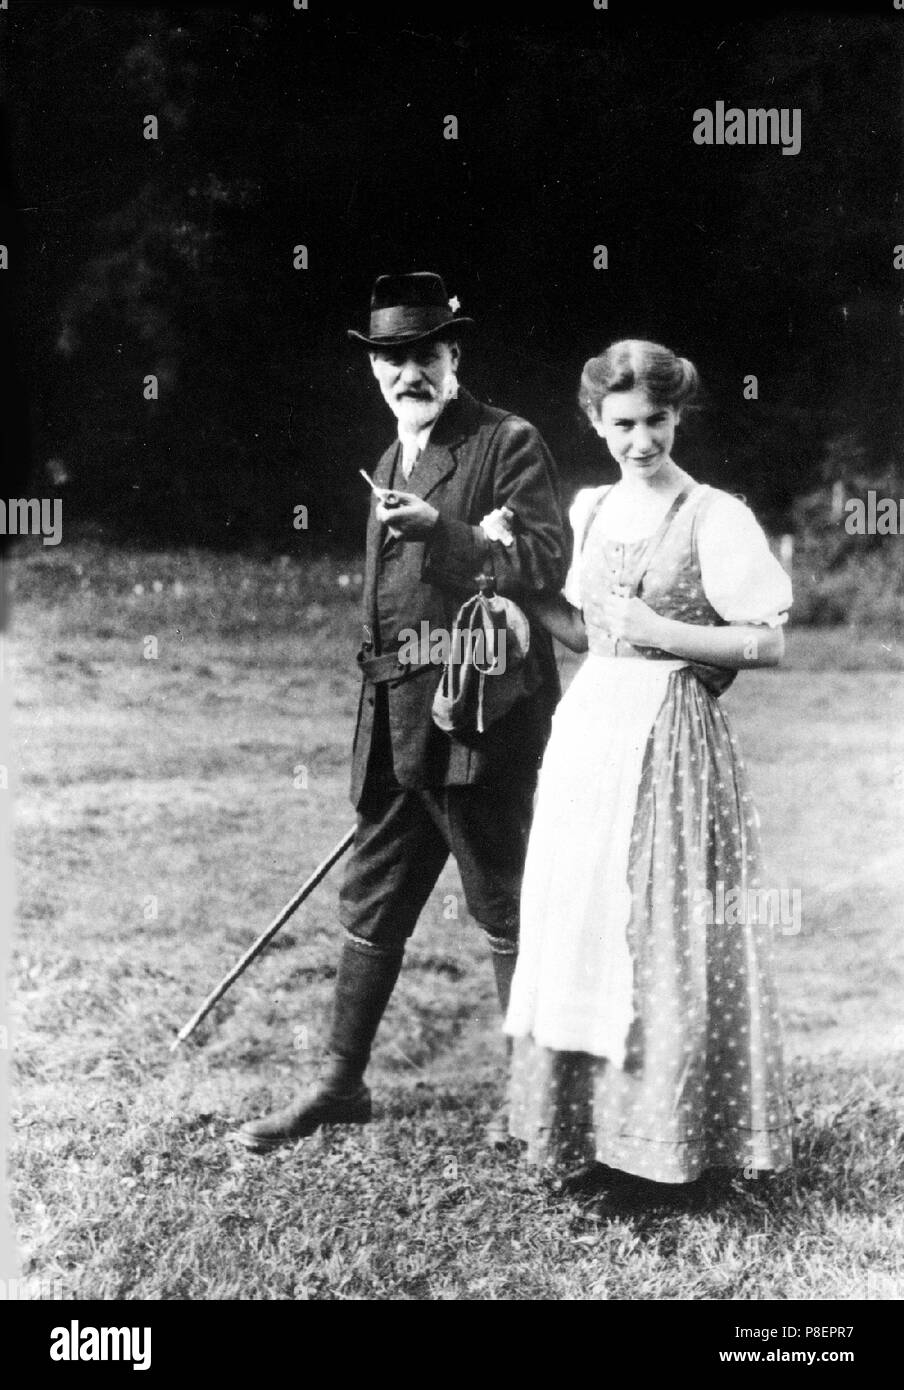 Sigmund and Anna Freud in the Dolomites. Museum: PRIVATE COLLECTION. - Stock Image